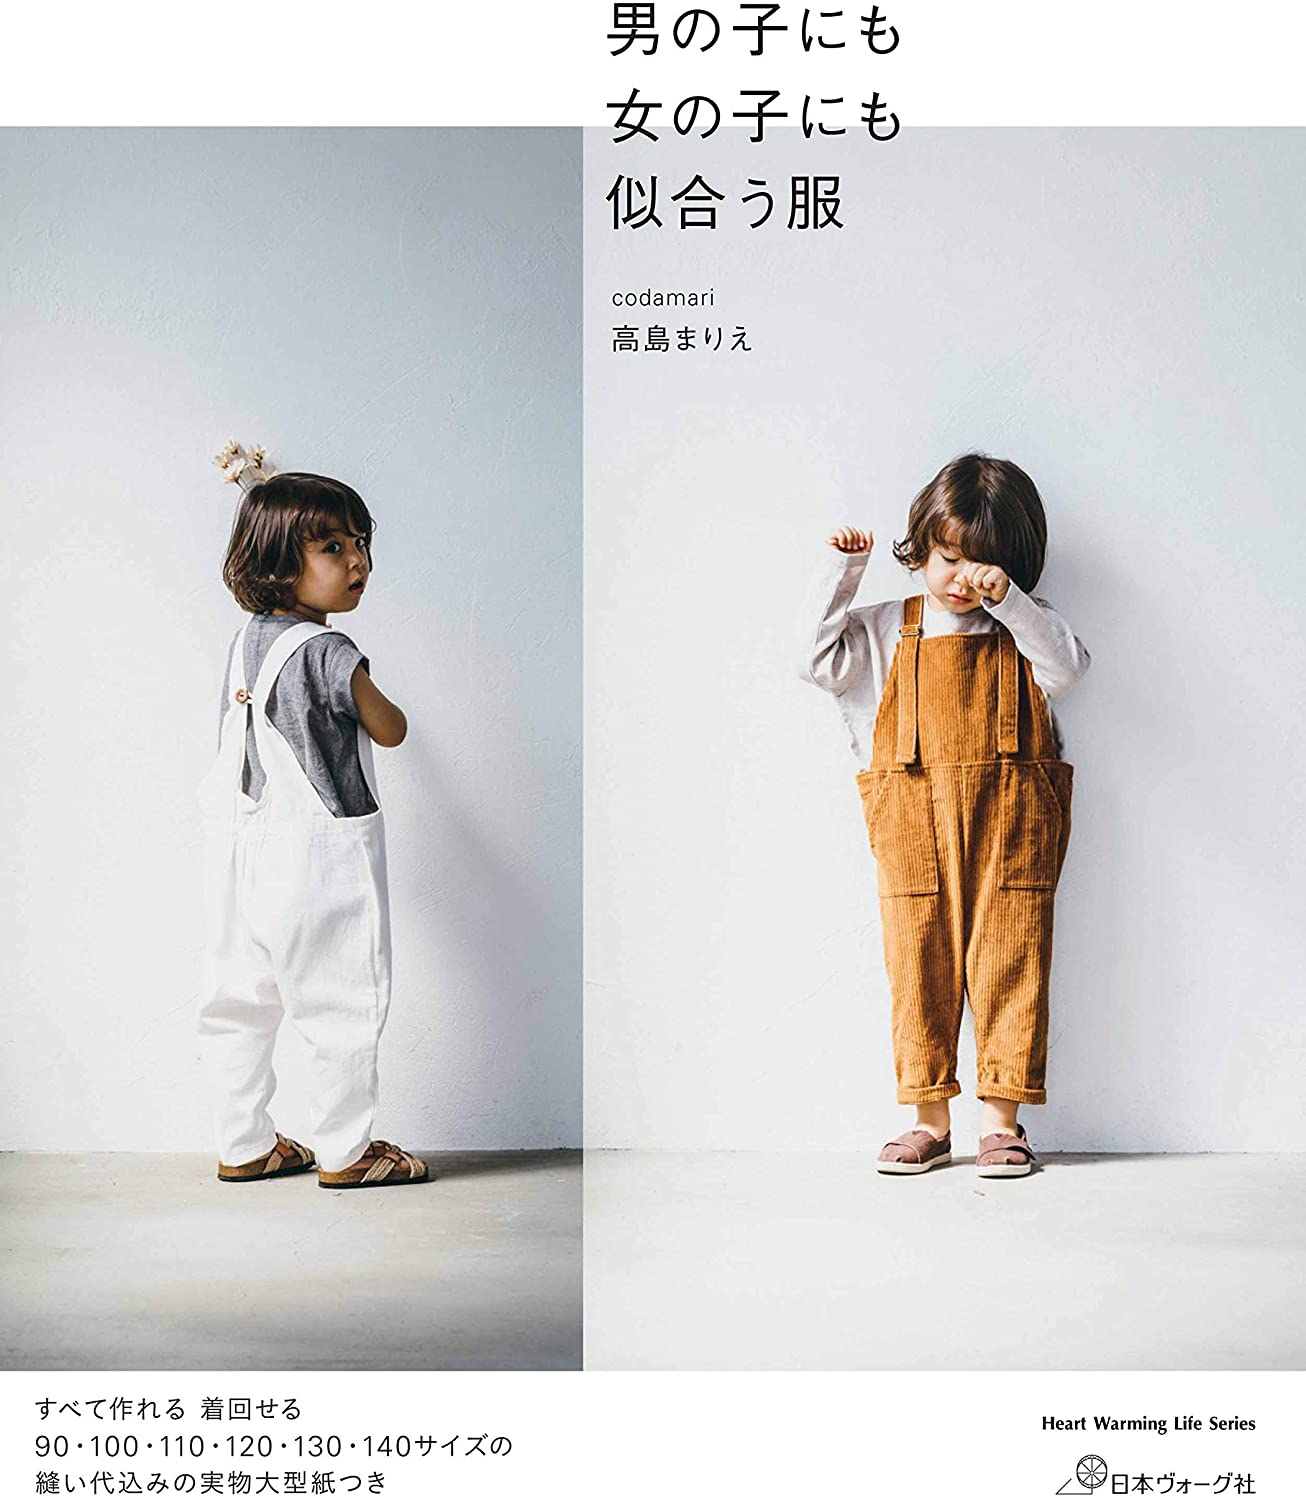 Clothes that suit both boys and girls